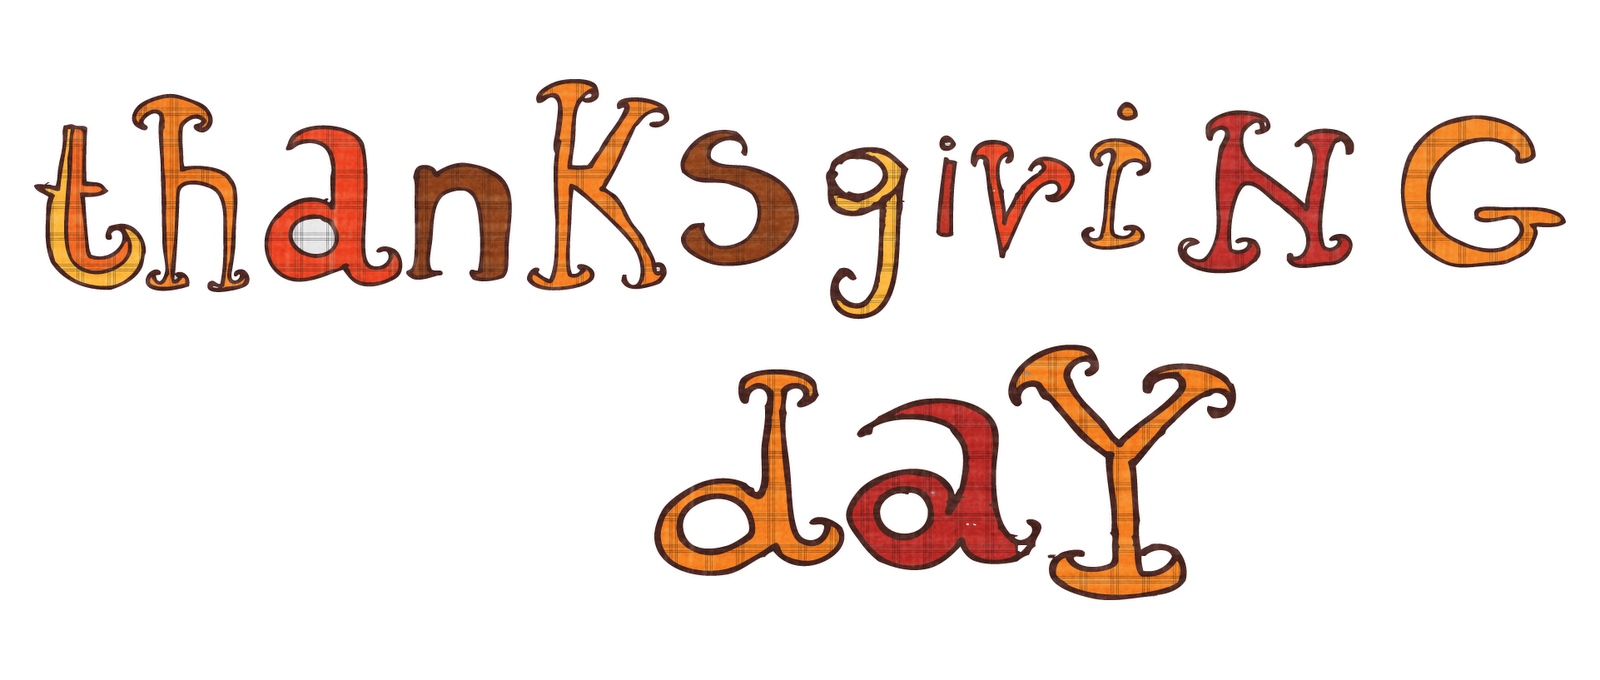 thanksgiving day 2016 HD images